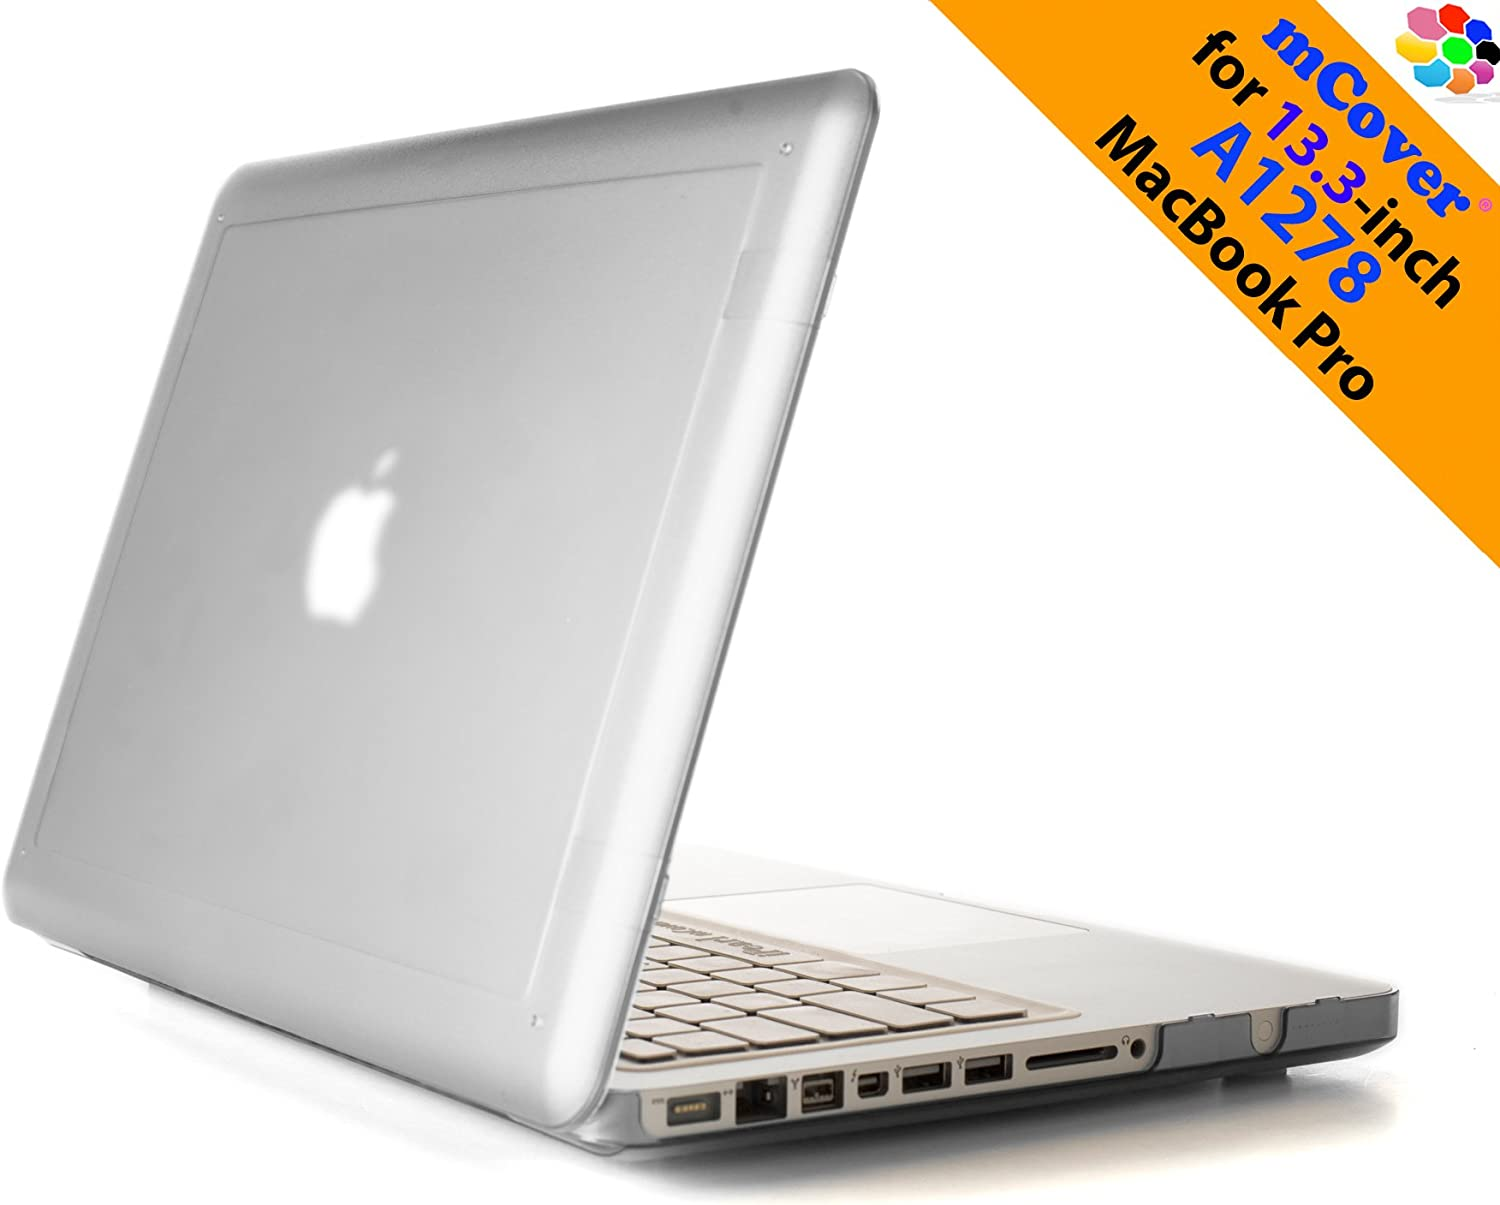 iPearl mCover Hard Shell Case with FREE keyboard cover for Model A1278 13.3-inch Regular display Aluminum Unibody MacBook Pro - CLEAR